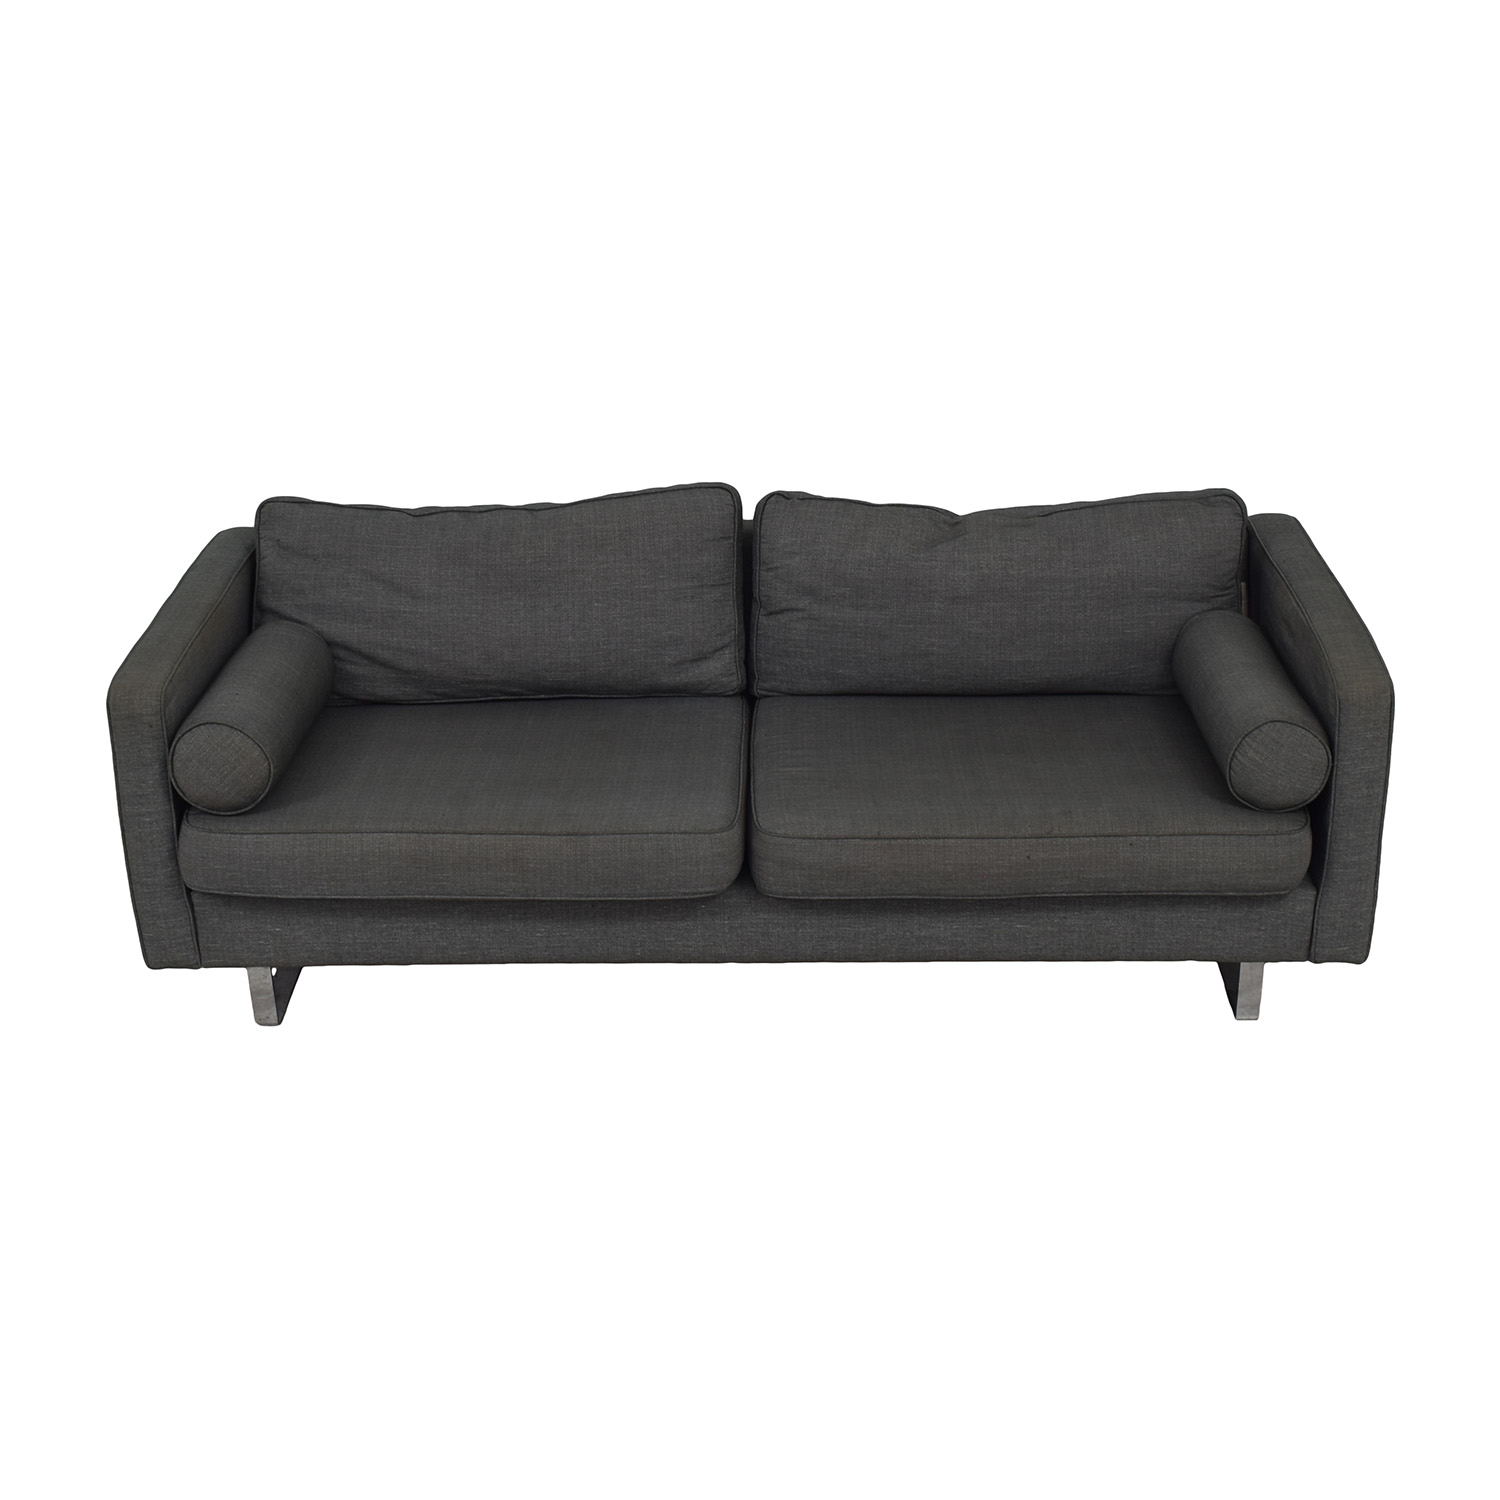 Conrans Conrans Grey Two-Cushion Sofa used